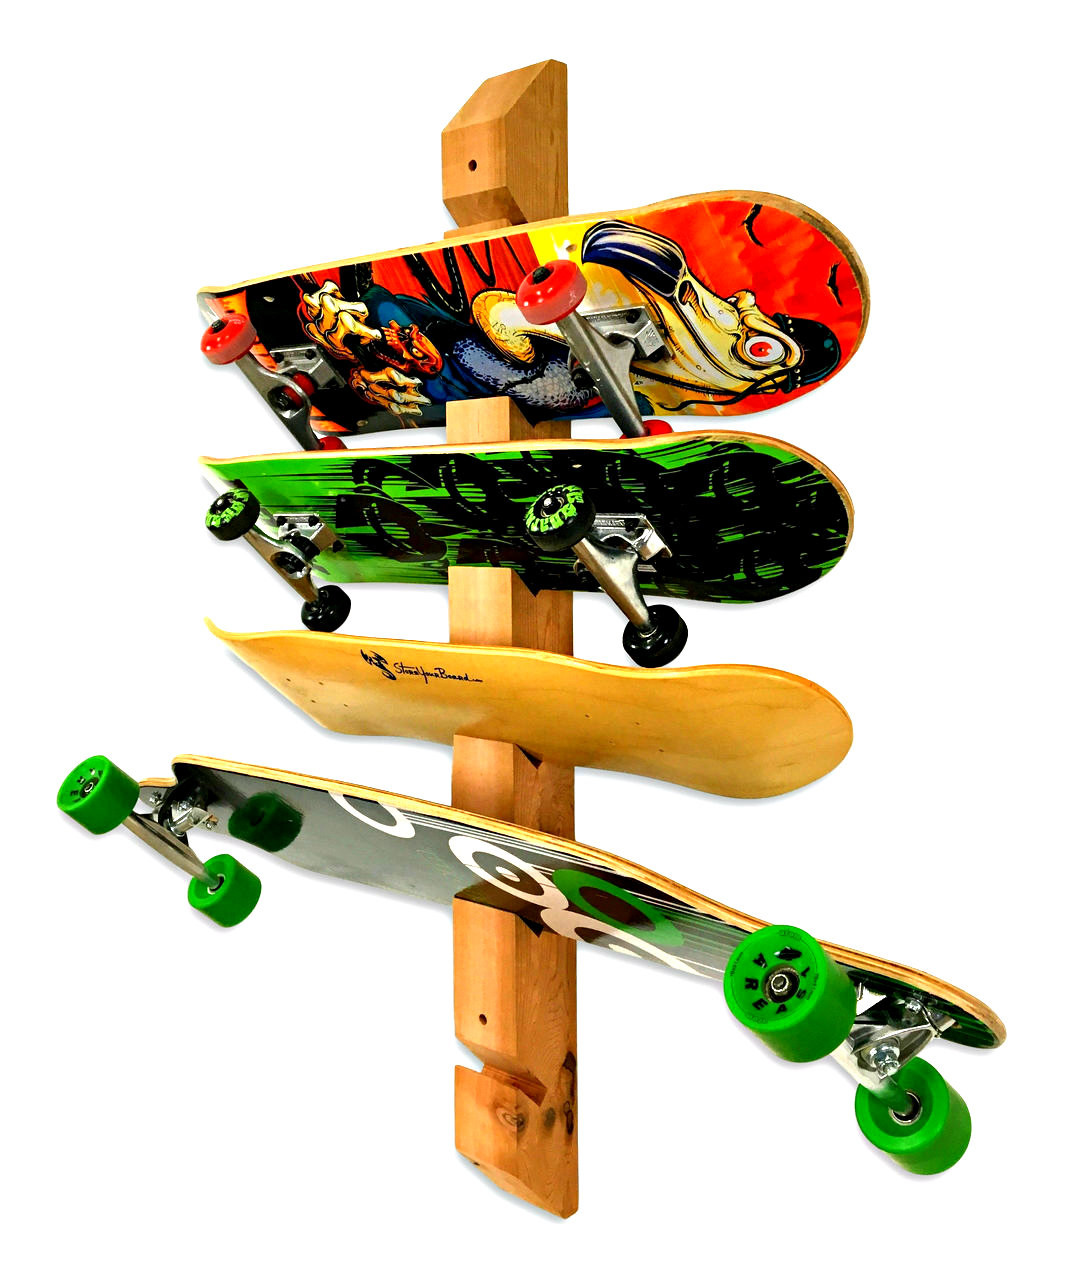 Handcrafted Cedar Wall Rack | 6 Skateboards